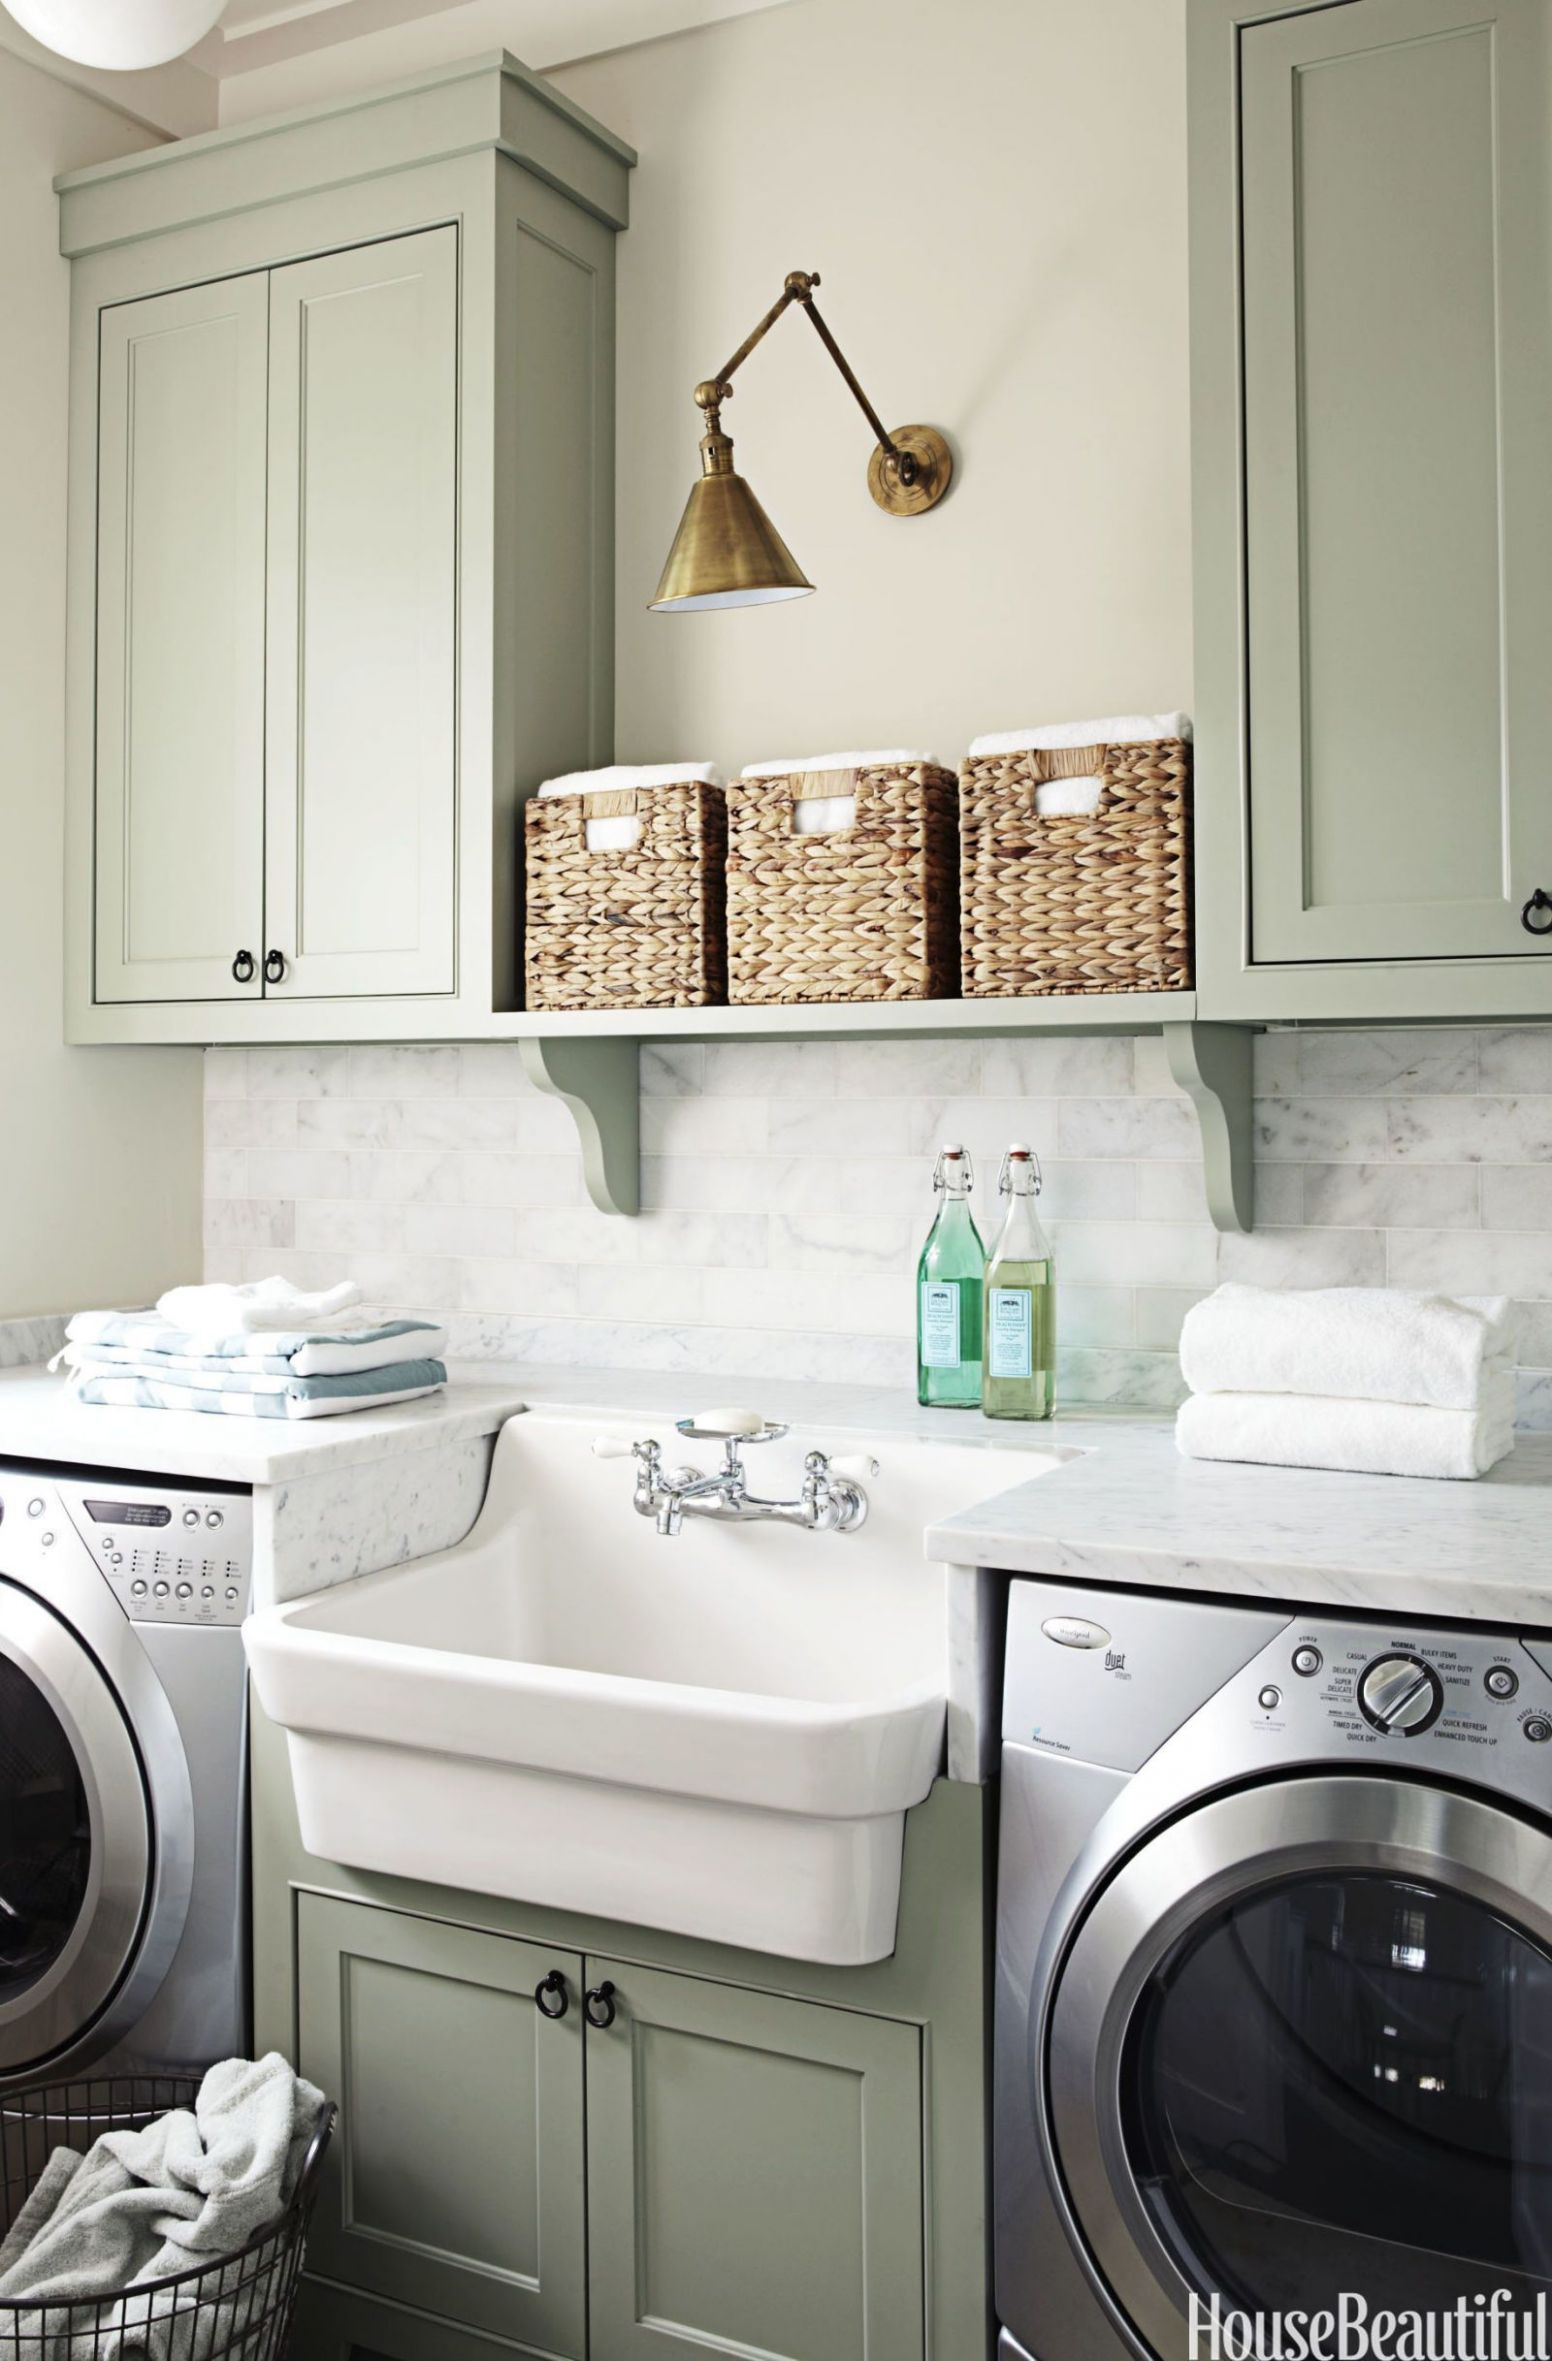 9 Small Laundry Room Ideas - Small Laundry Room Storage Tips